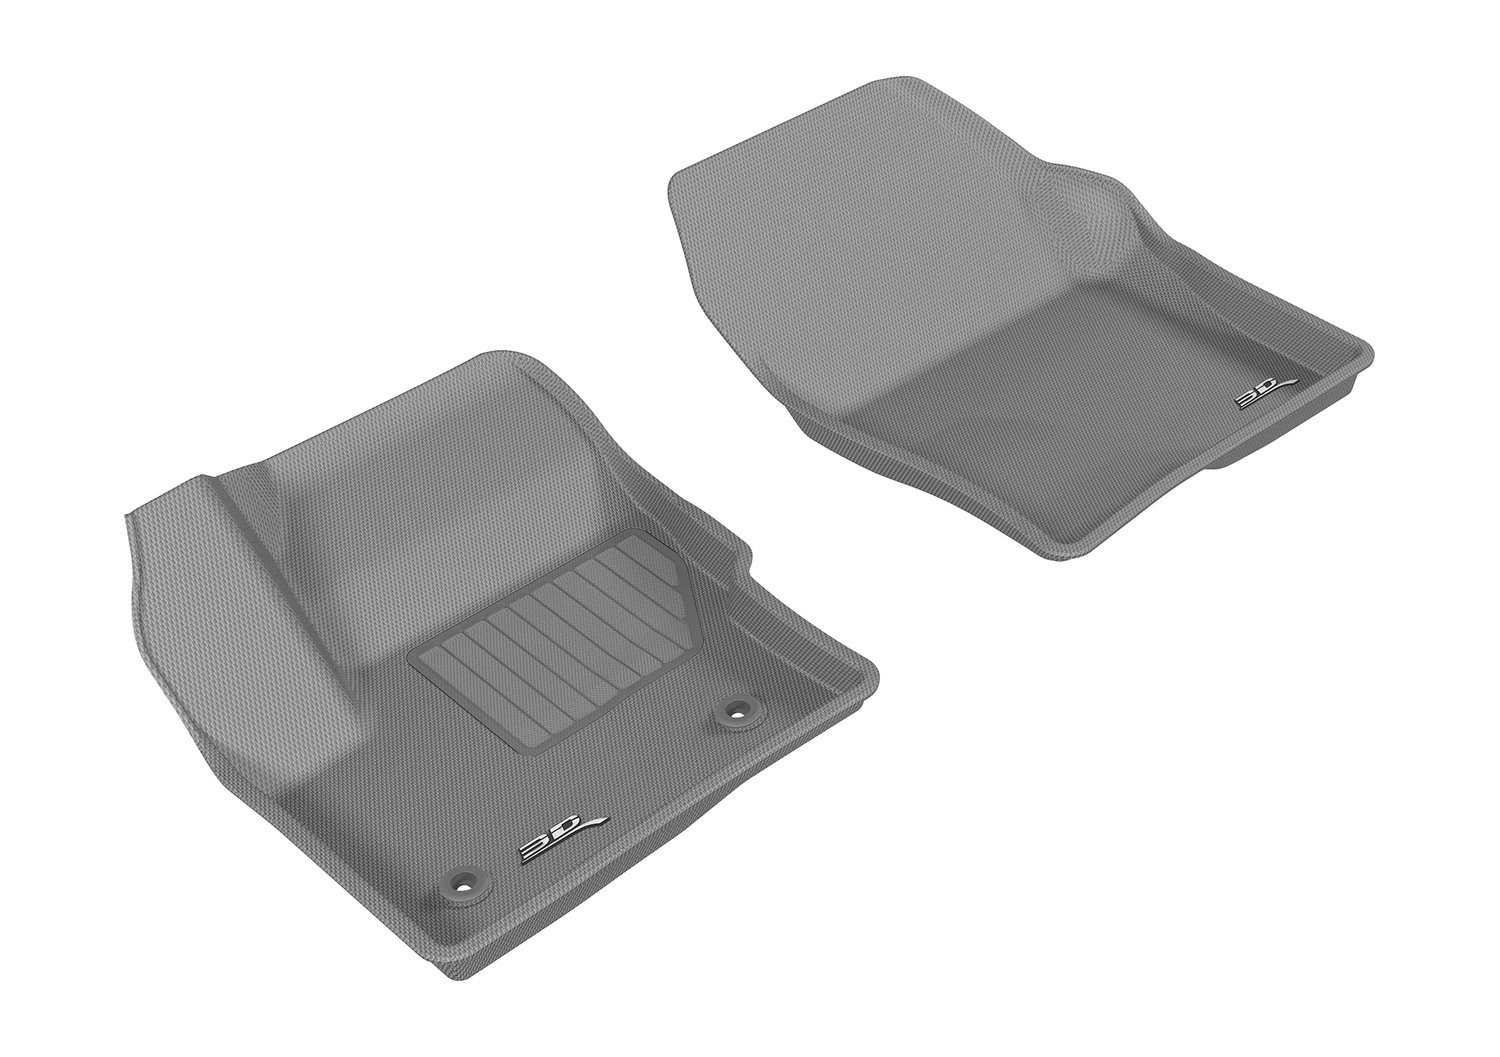 L1LC00711501 3D MAXpider Front Row Custom Fit All-Weather Floor Mat for Select Lincoln MKC Models Gray Kagu Rubber